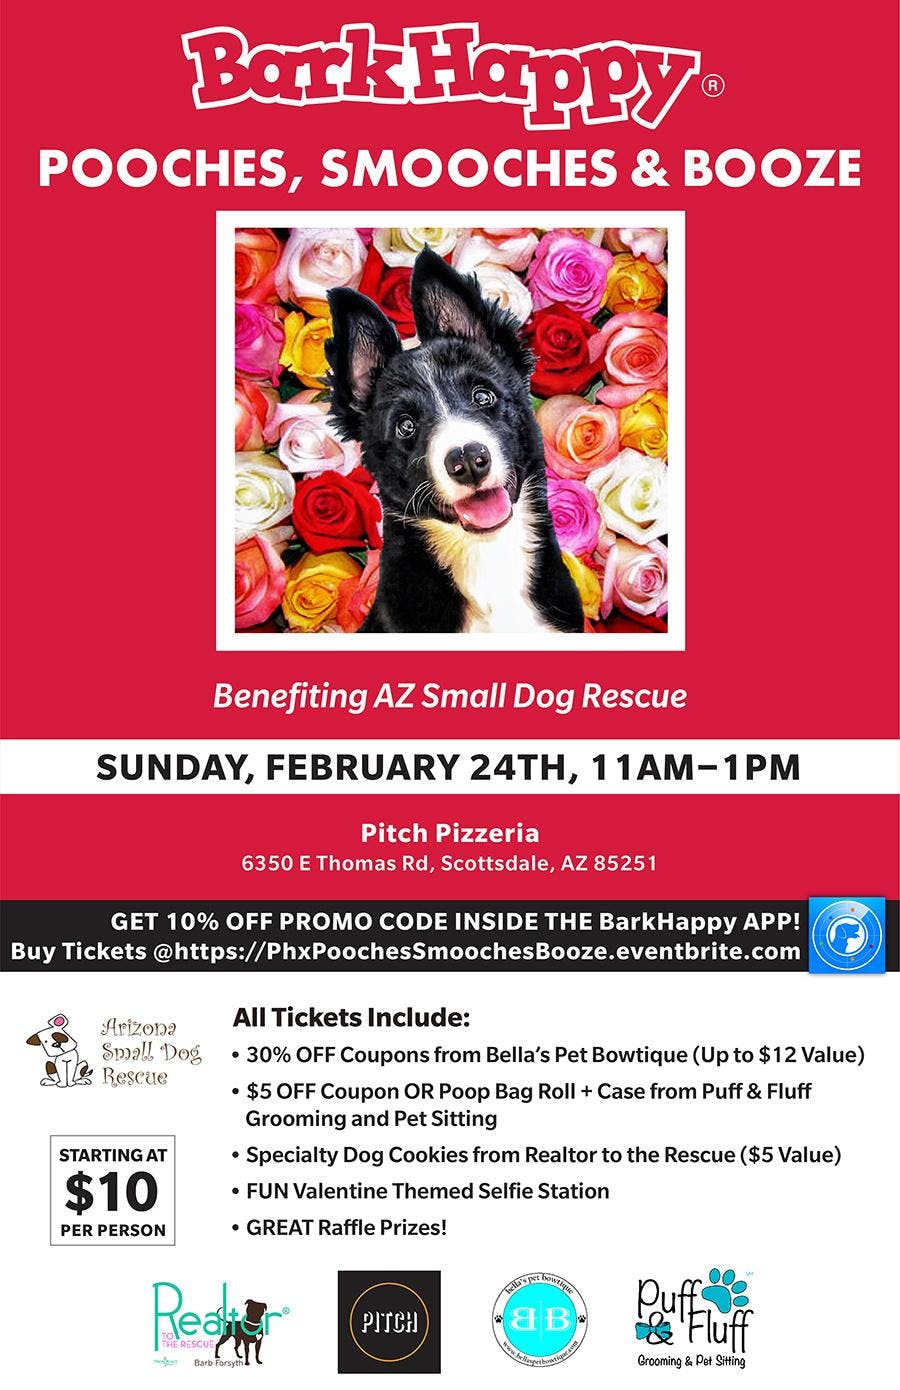 BarkHappy Phoenix: Pooches, Smooches & Booze Benefiting Arizona Small Dogs!